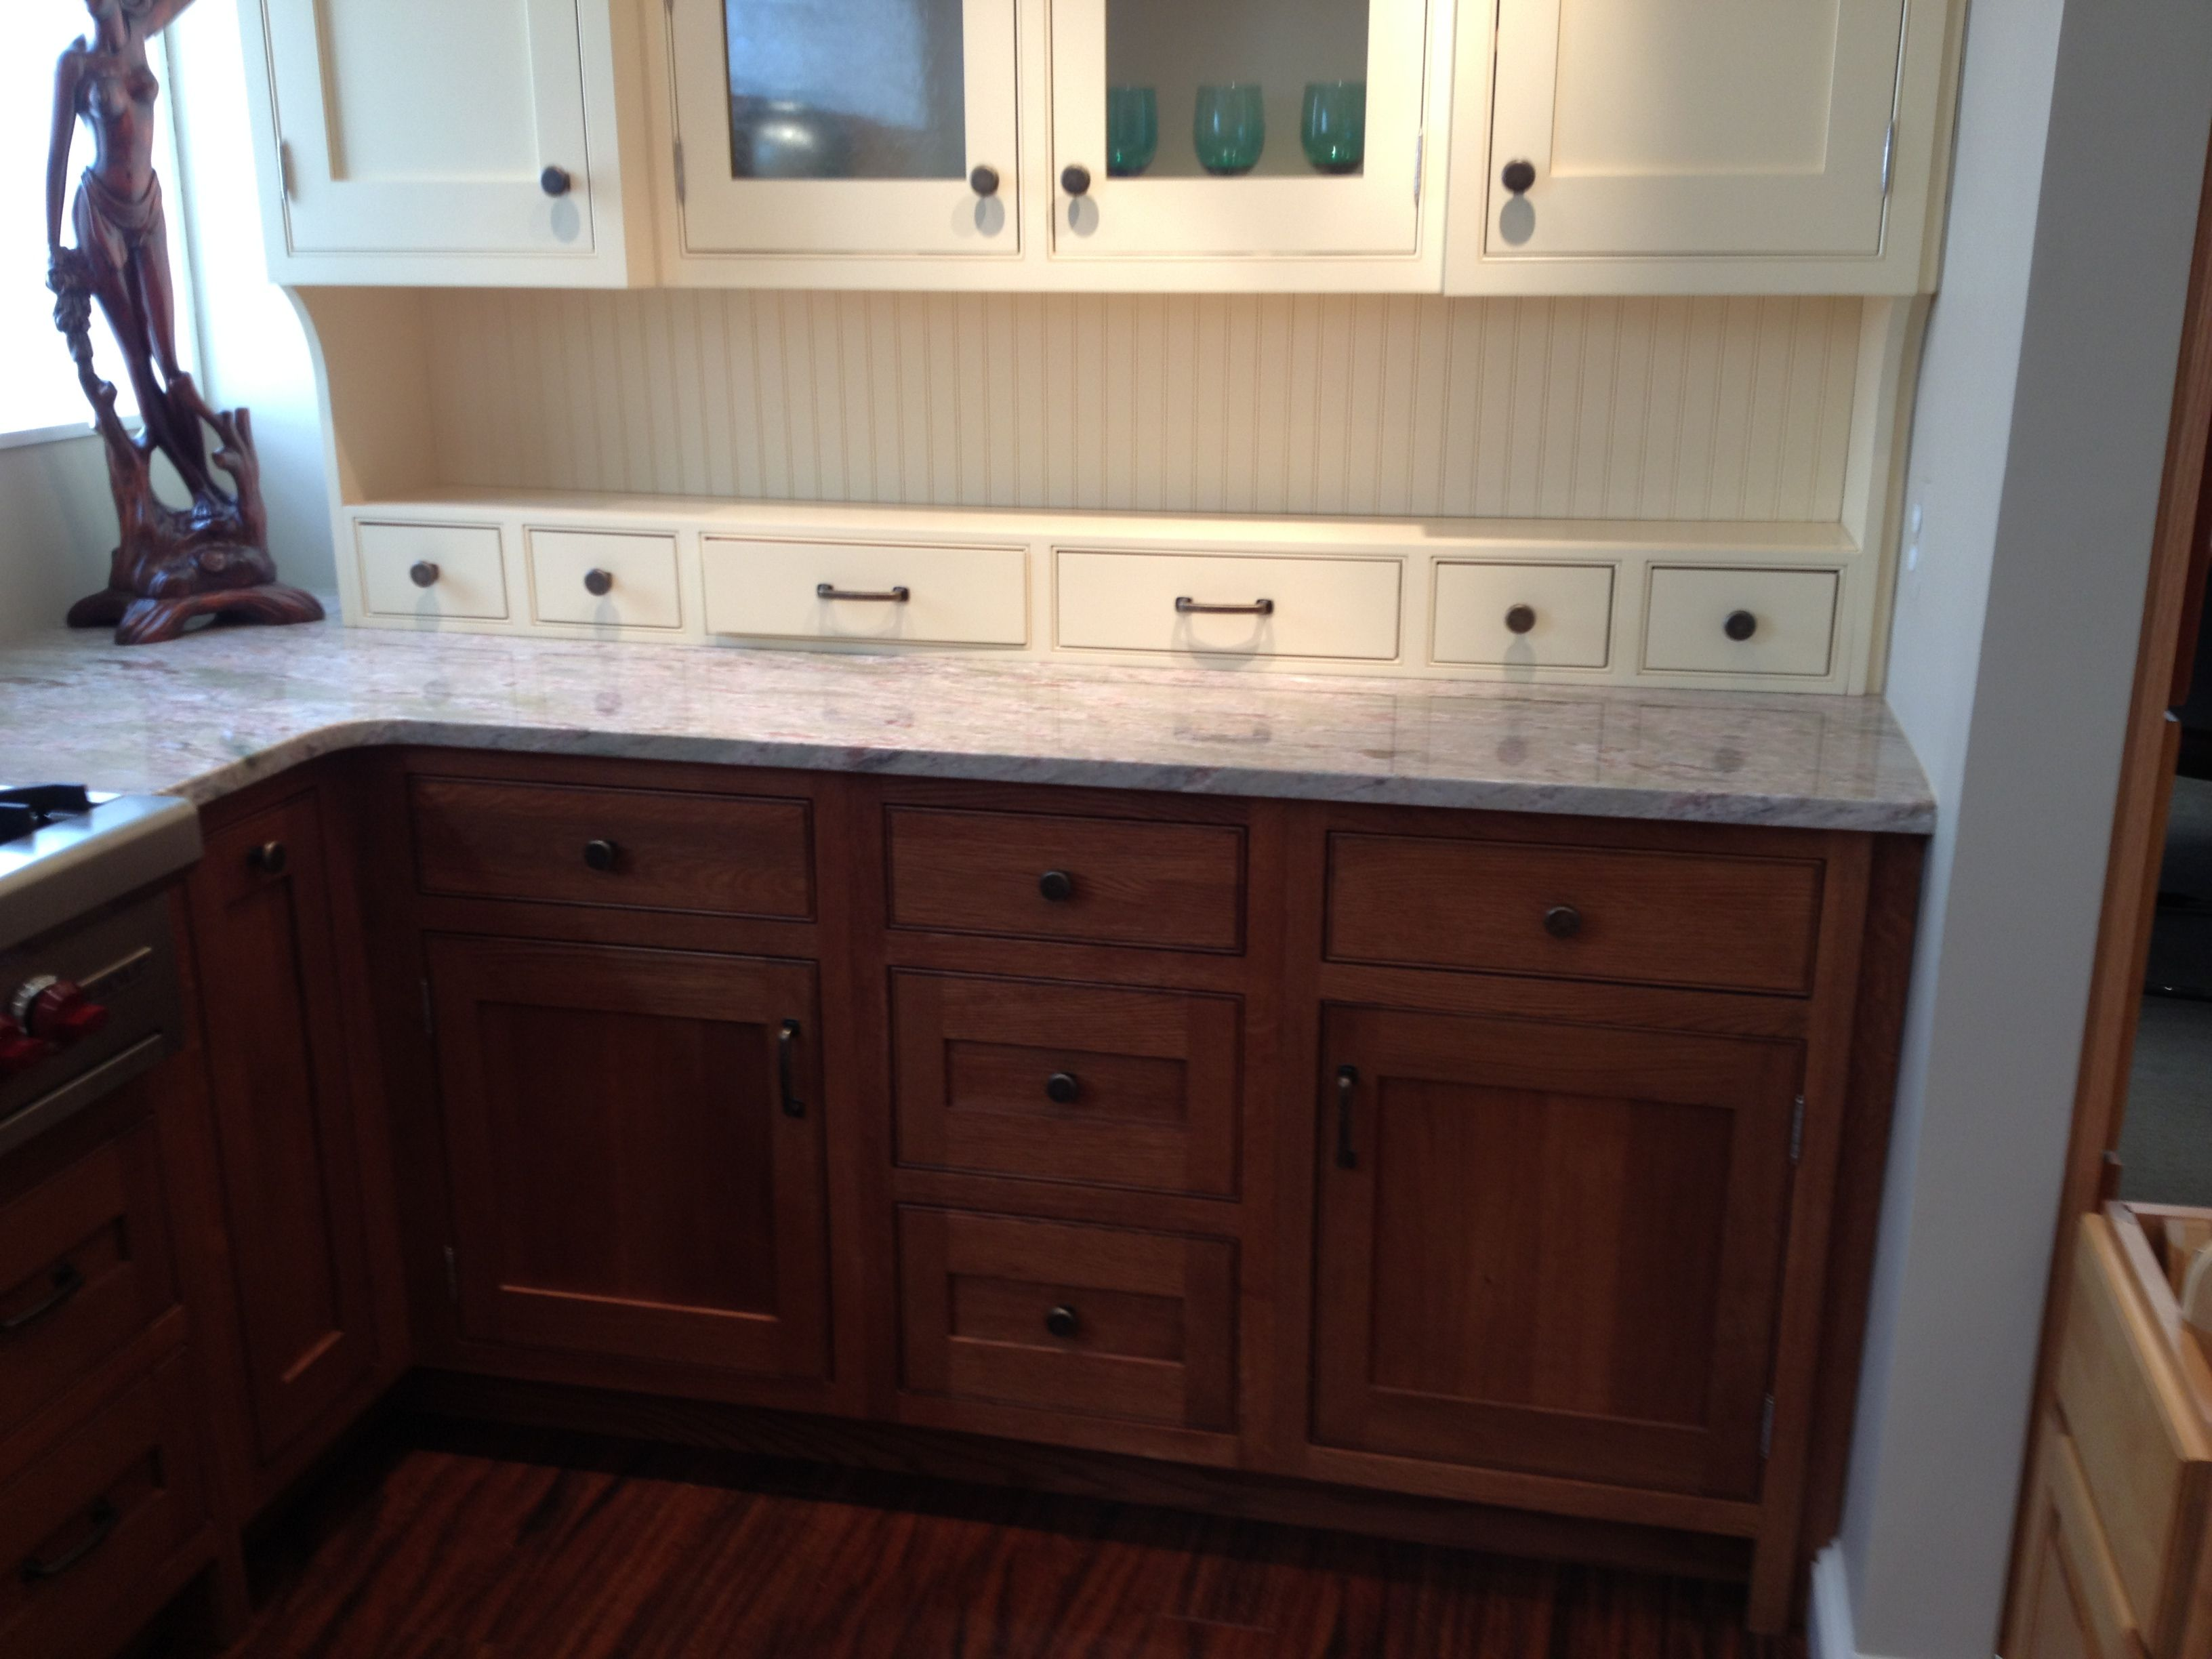 Use mixed cabinet colors in kitchen re modeling pinterest Kitchen design mixed cabinets